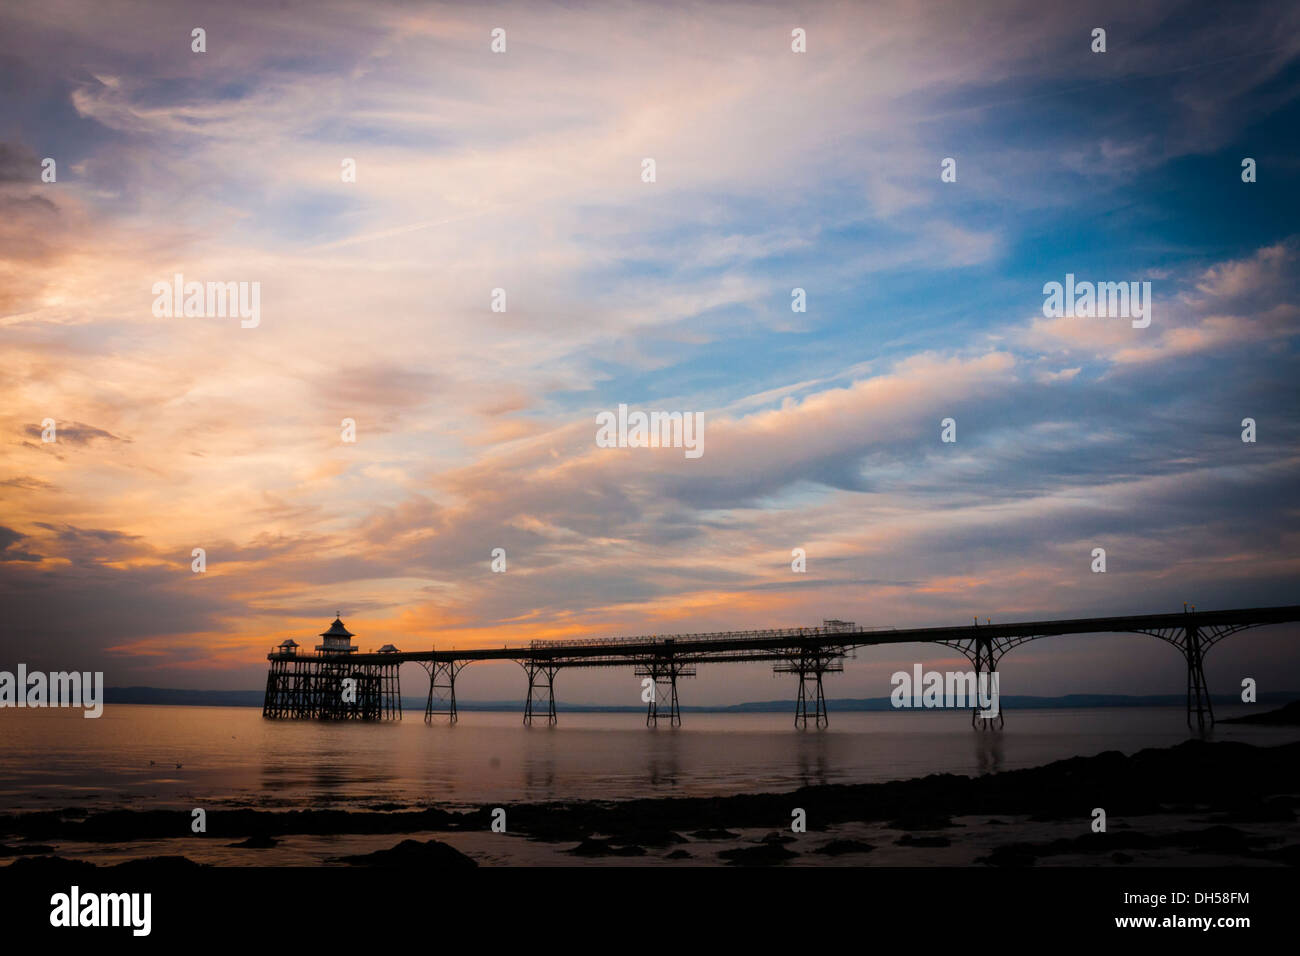 clevedon-pier-at-sunset-the-pier-was-des